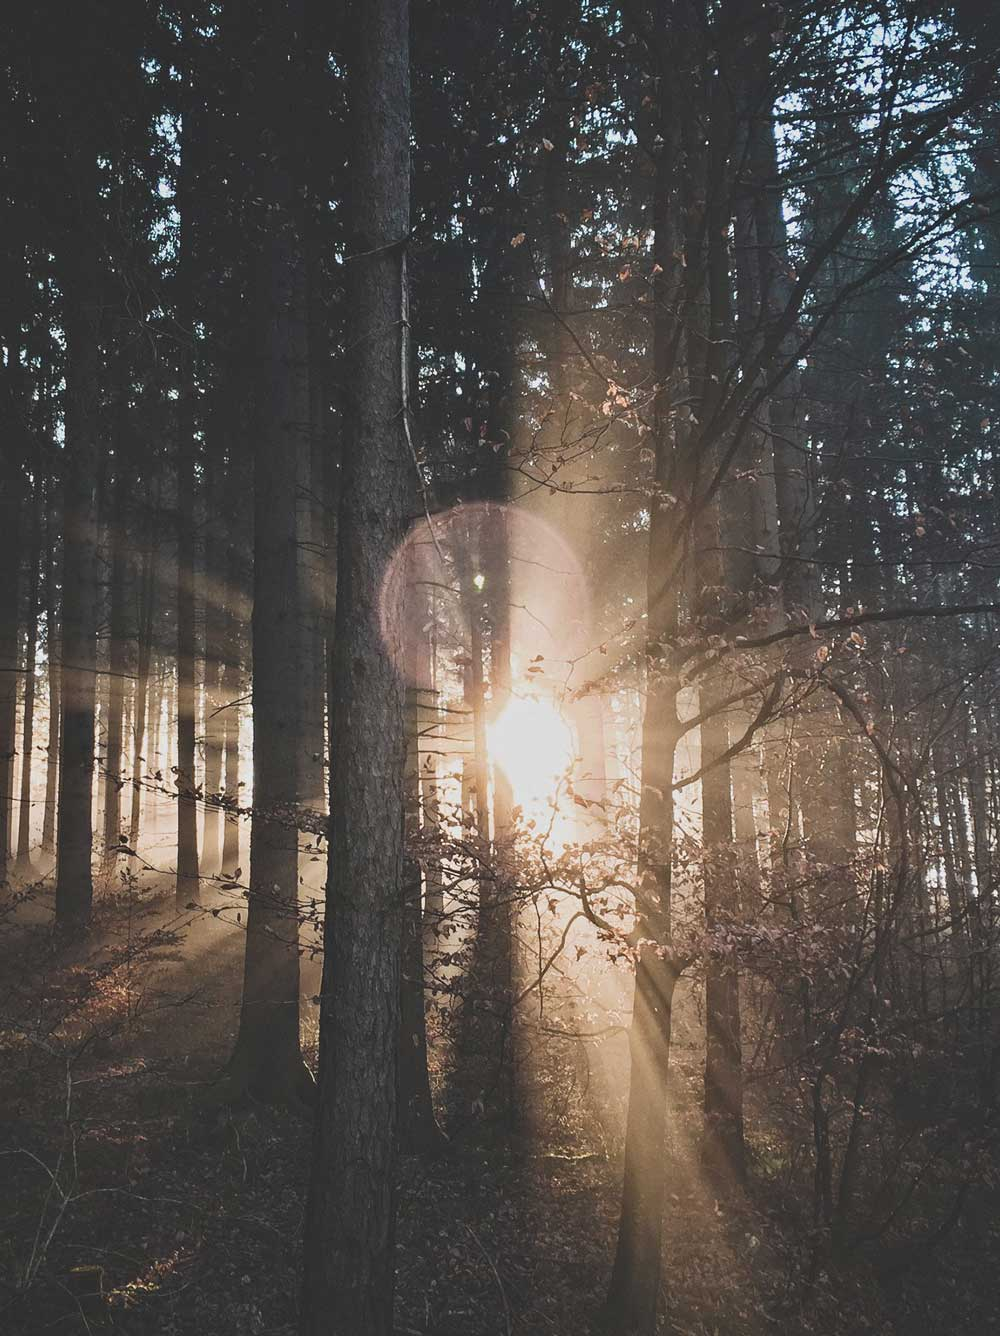 The Sun Setting Through A Dense Forest Of Trees.